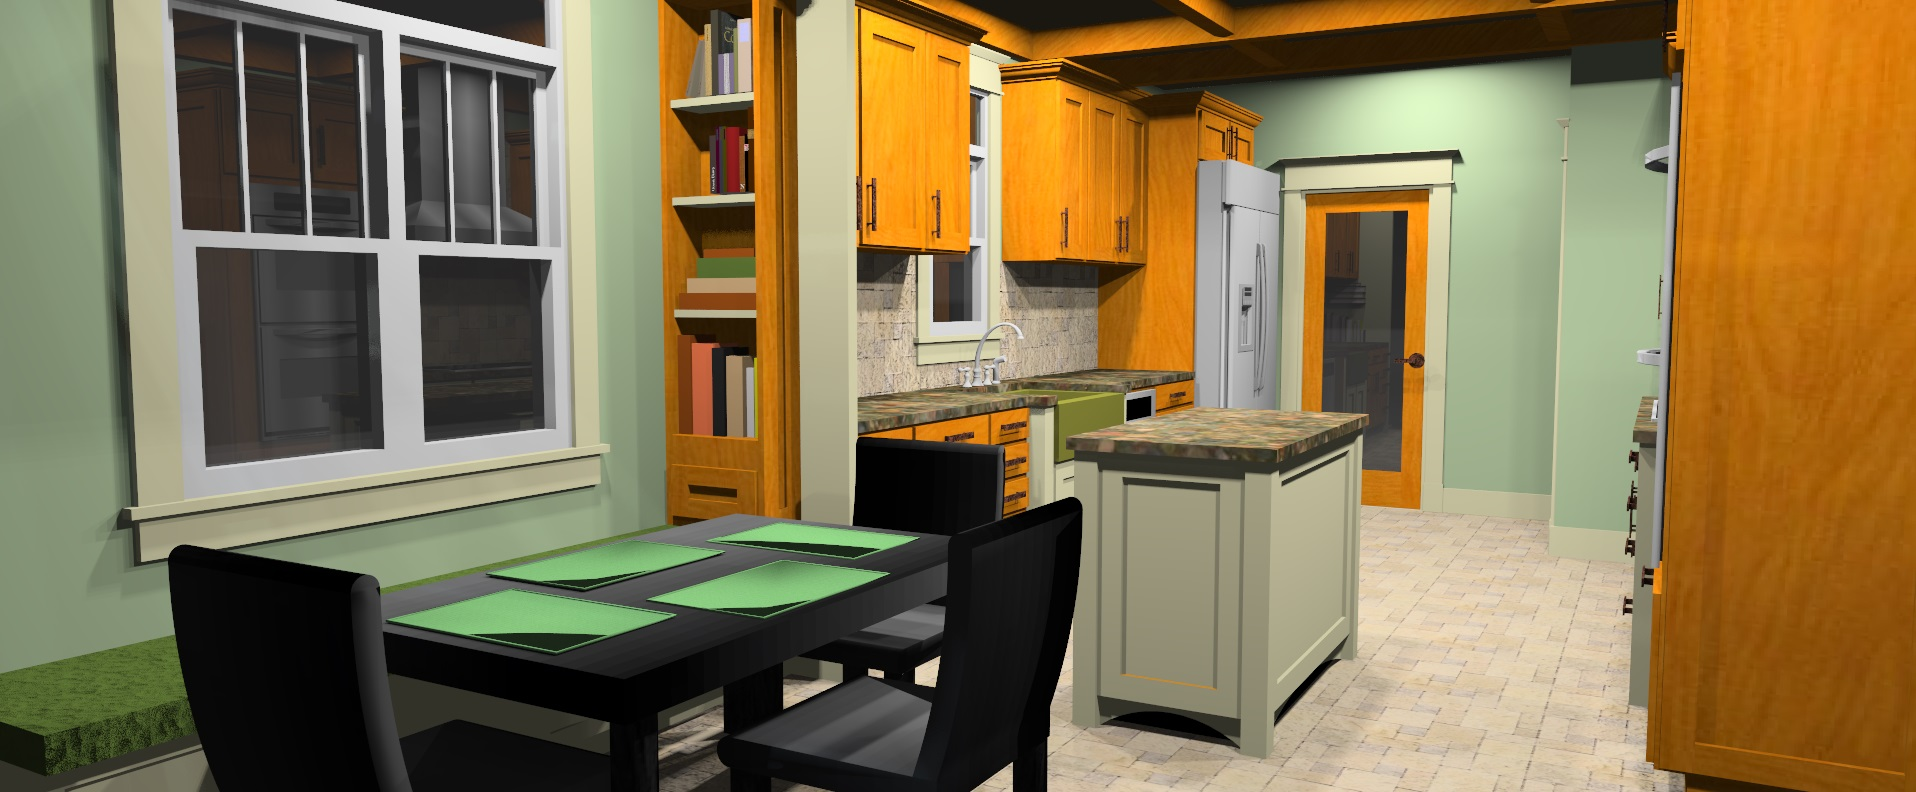 Townhouse Kitchen Rendering